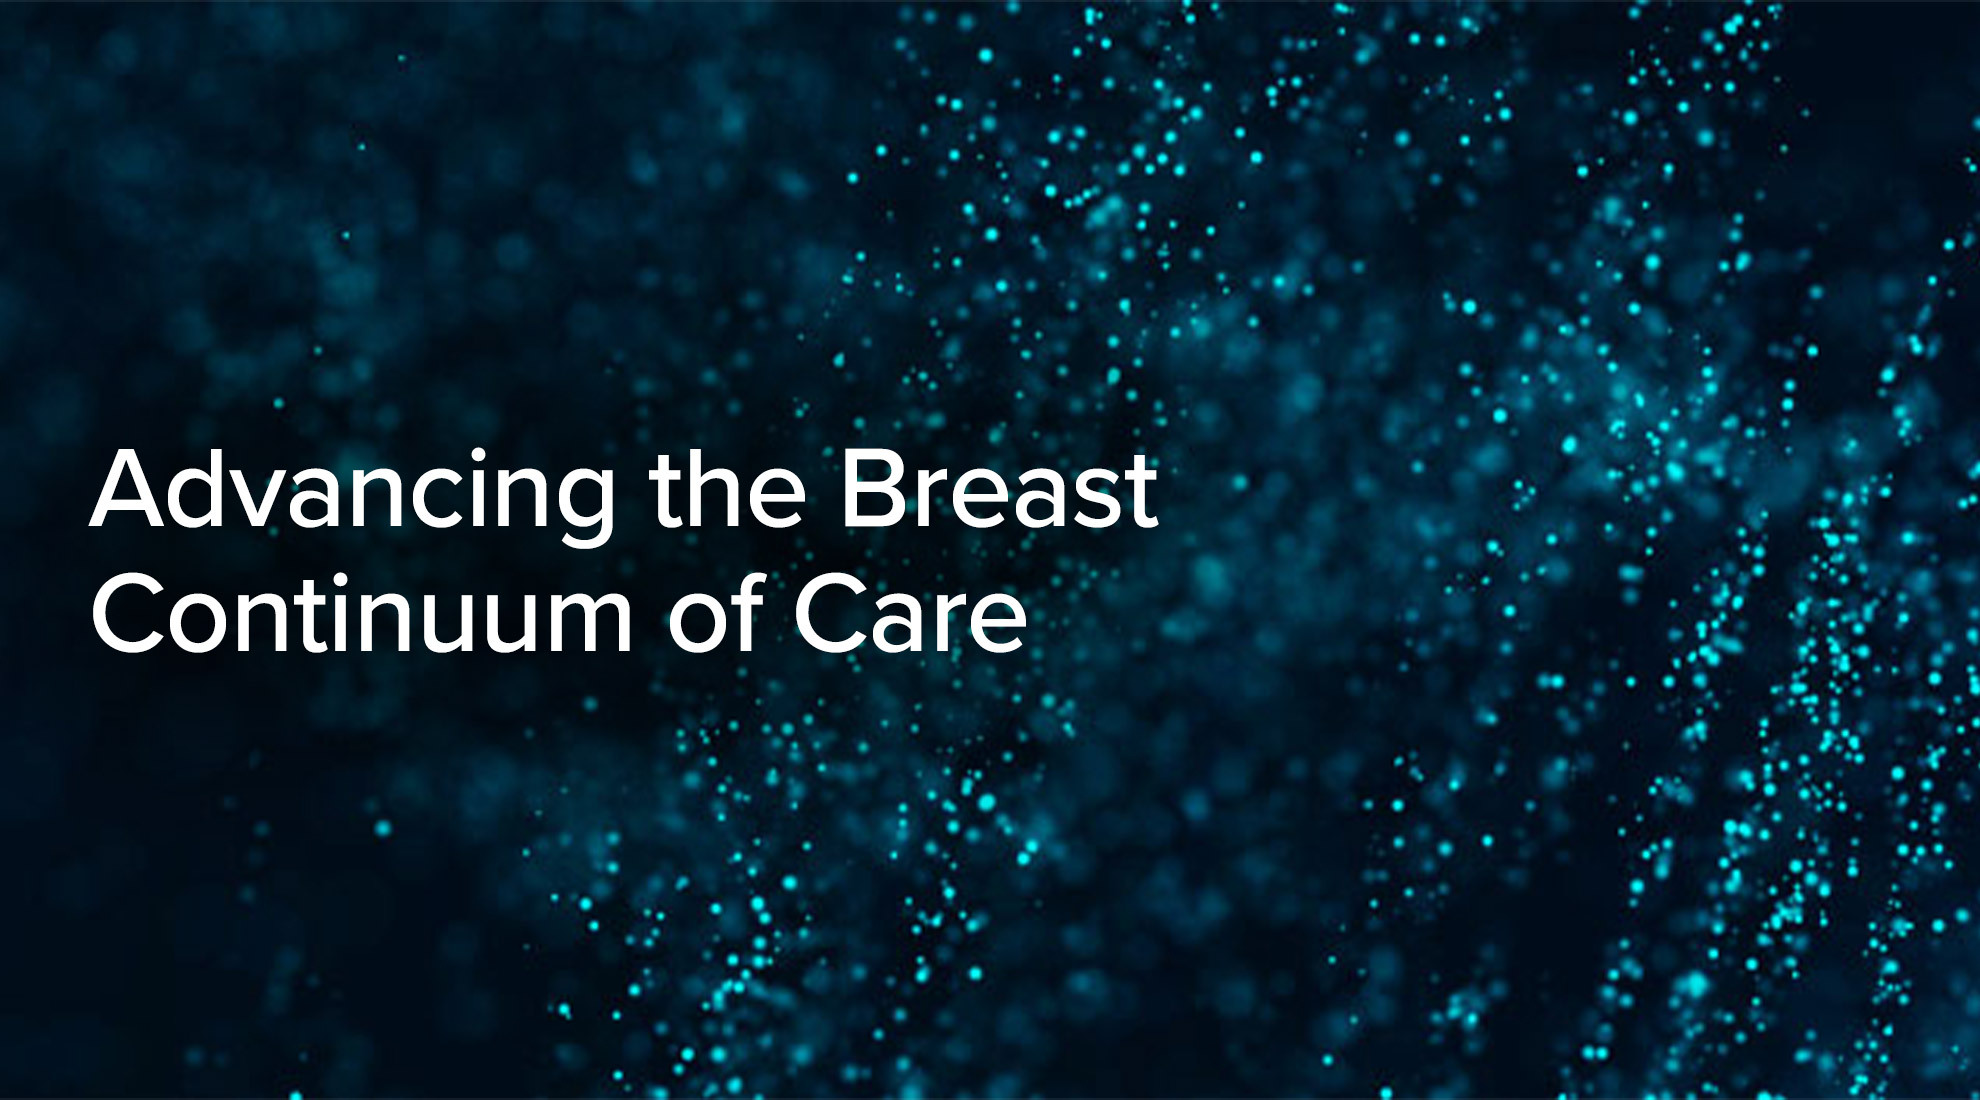 Advancing the Breast Continuum of Care